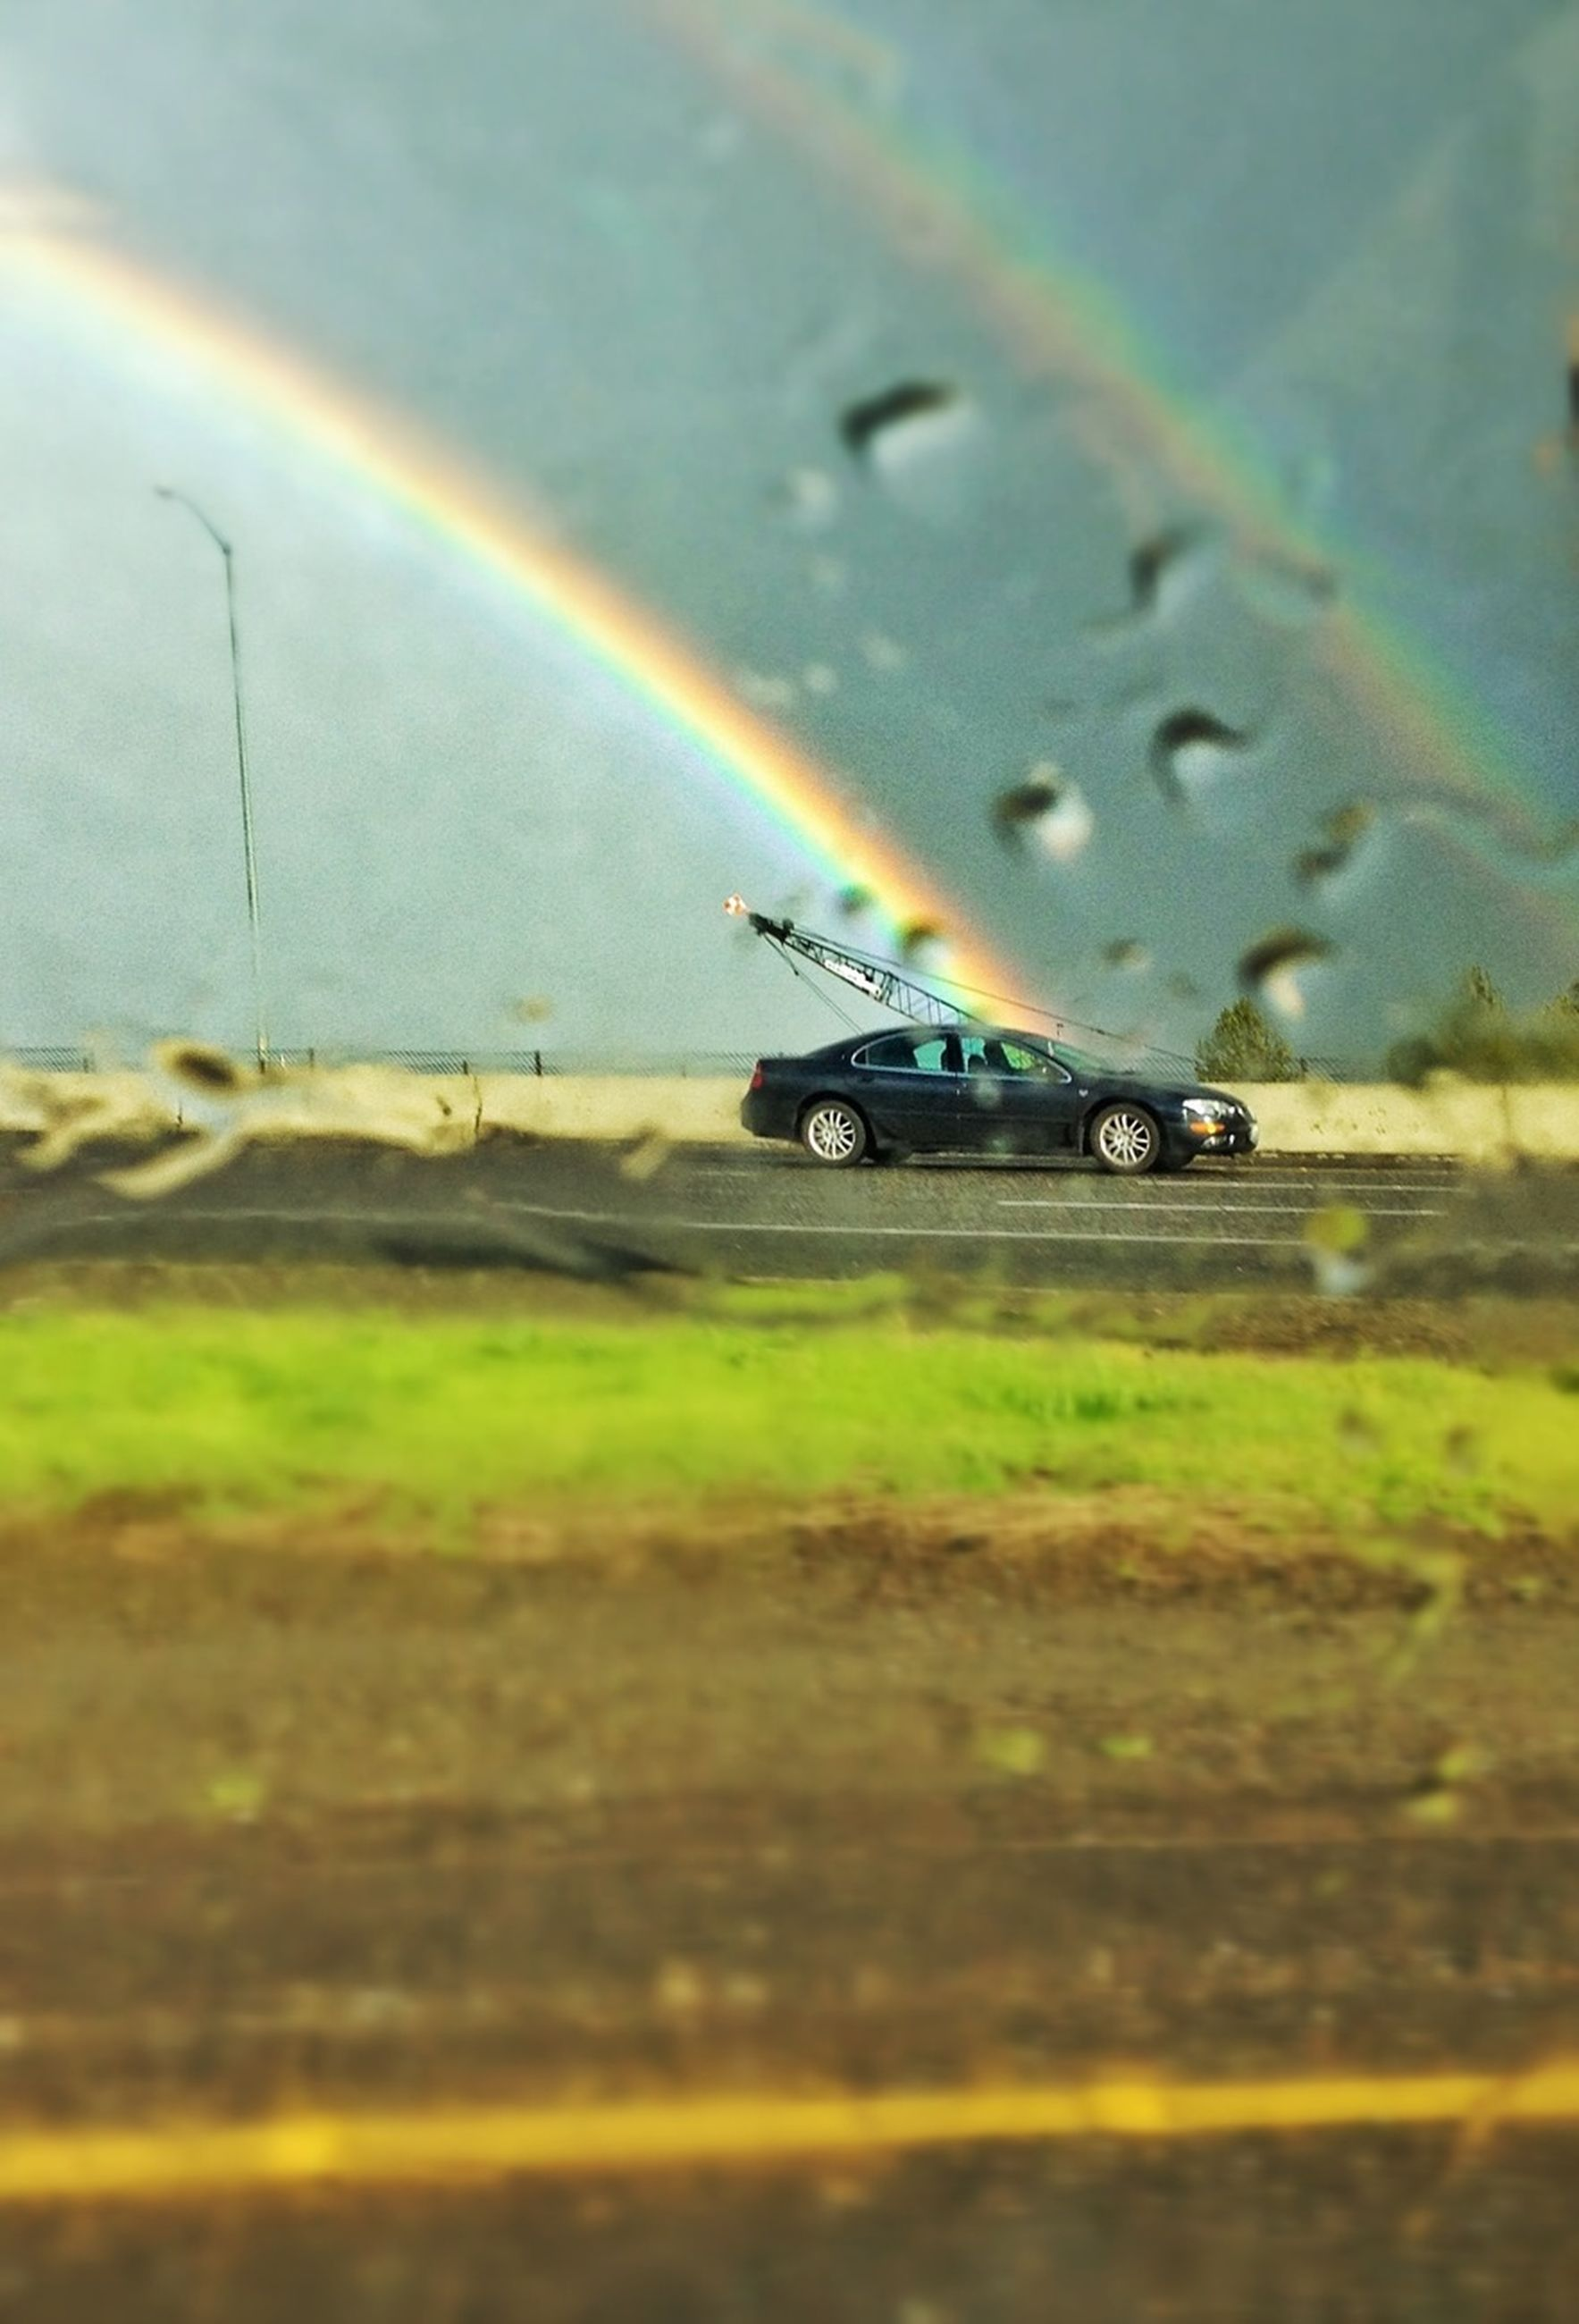 transportation, indoors, selective focus, multi colored, illuminated, transparent, glass - material, mode of transport, road, street, wet, vehicle interior, close-up, rain, no people, land vehicle, car, focus on foreground, defocused, window